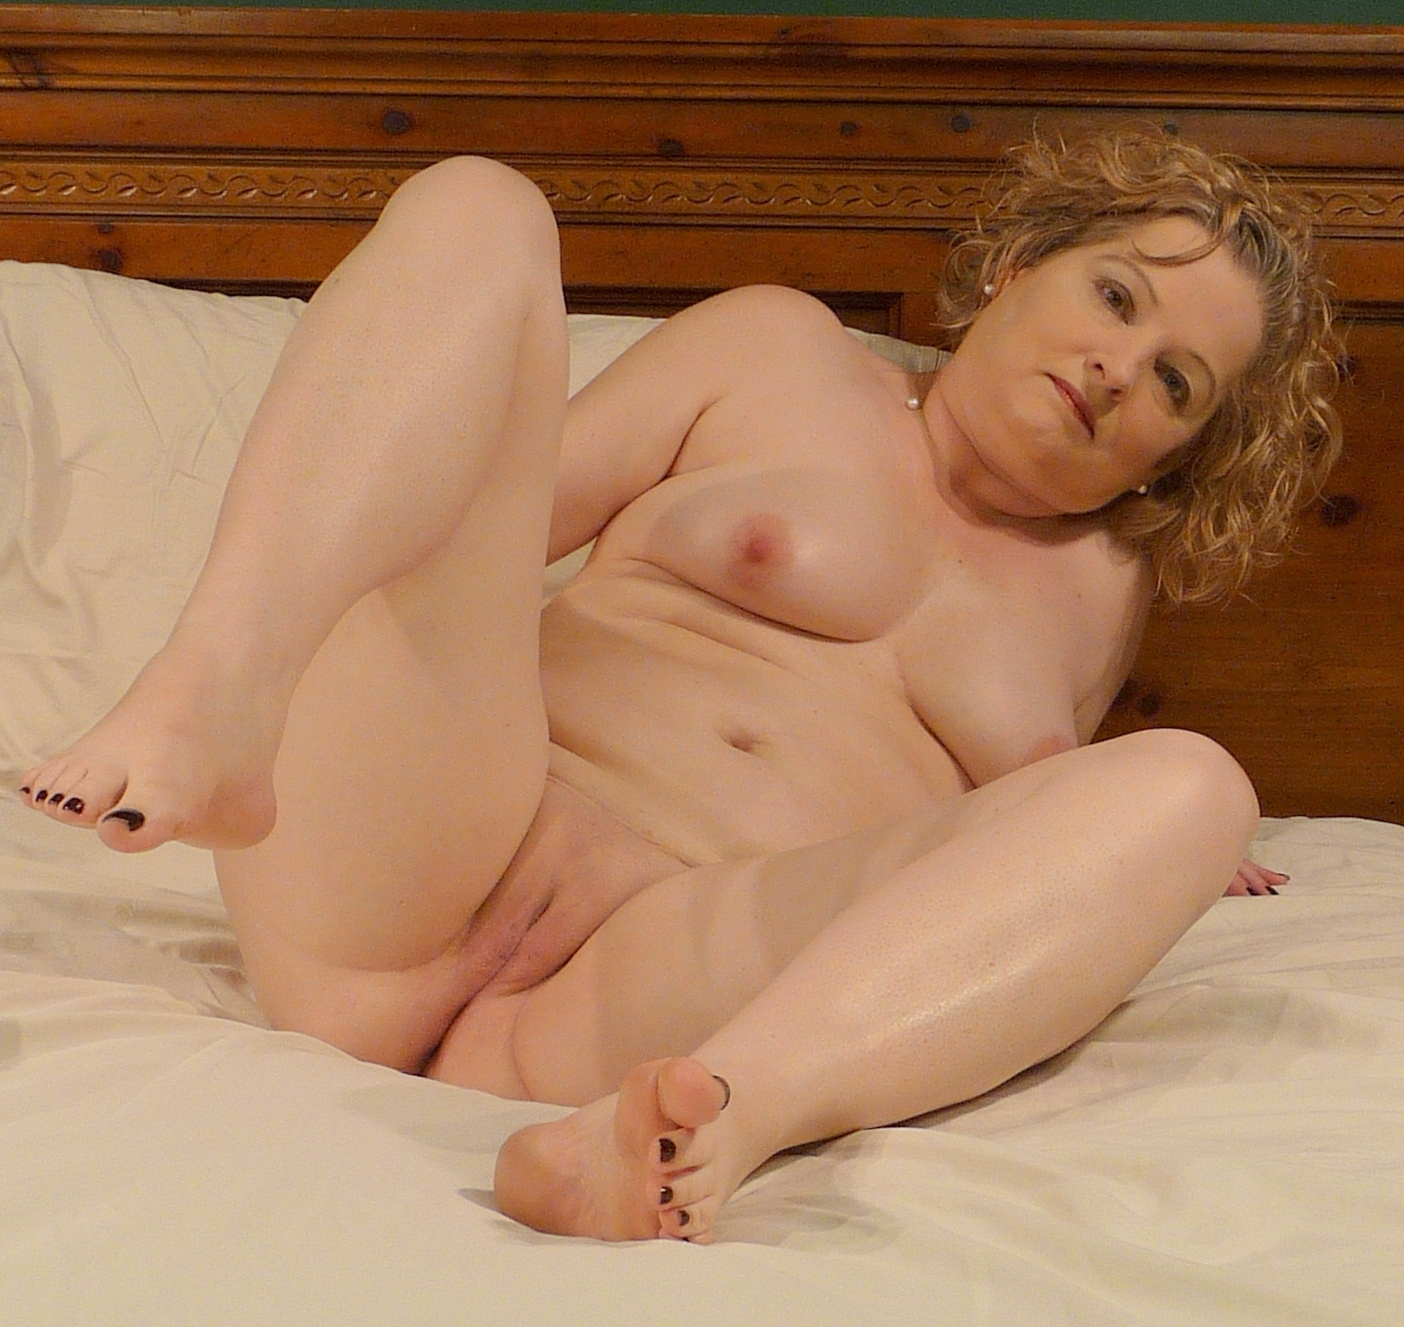 wife naked on bed